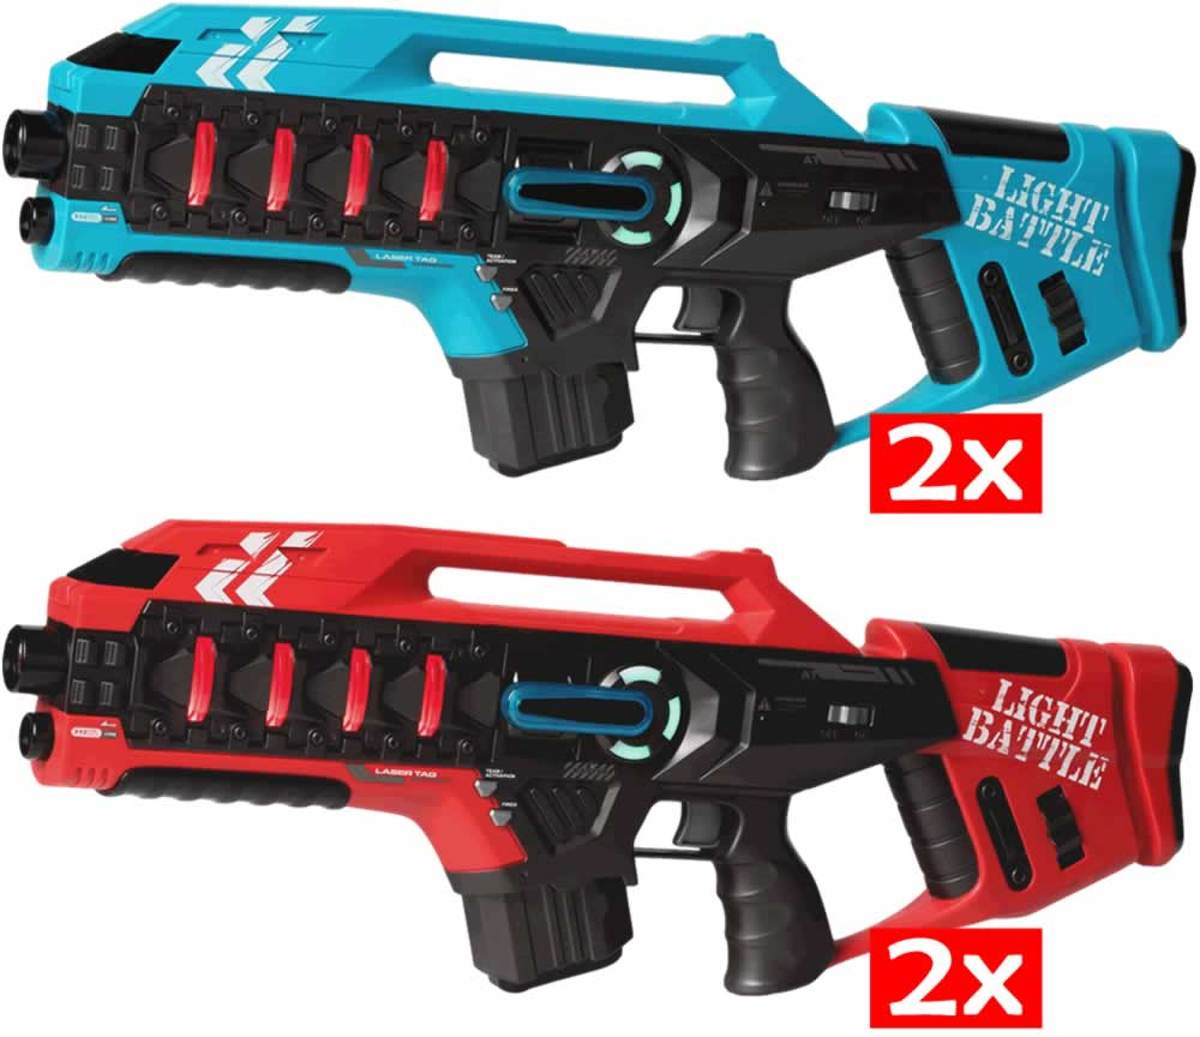 4   Active Anti-Cheat lasergame geweren - rood en blauw